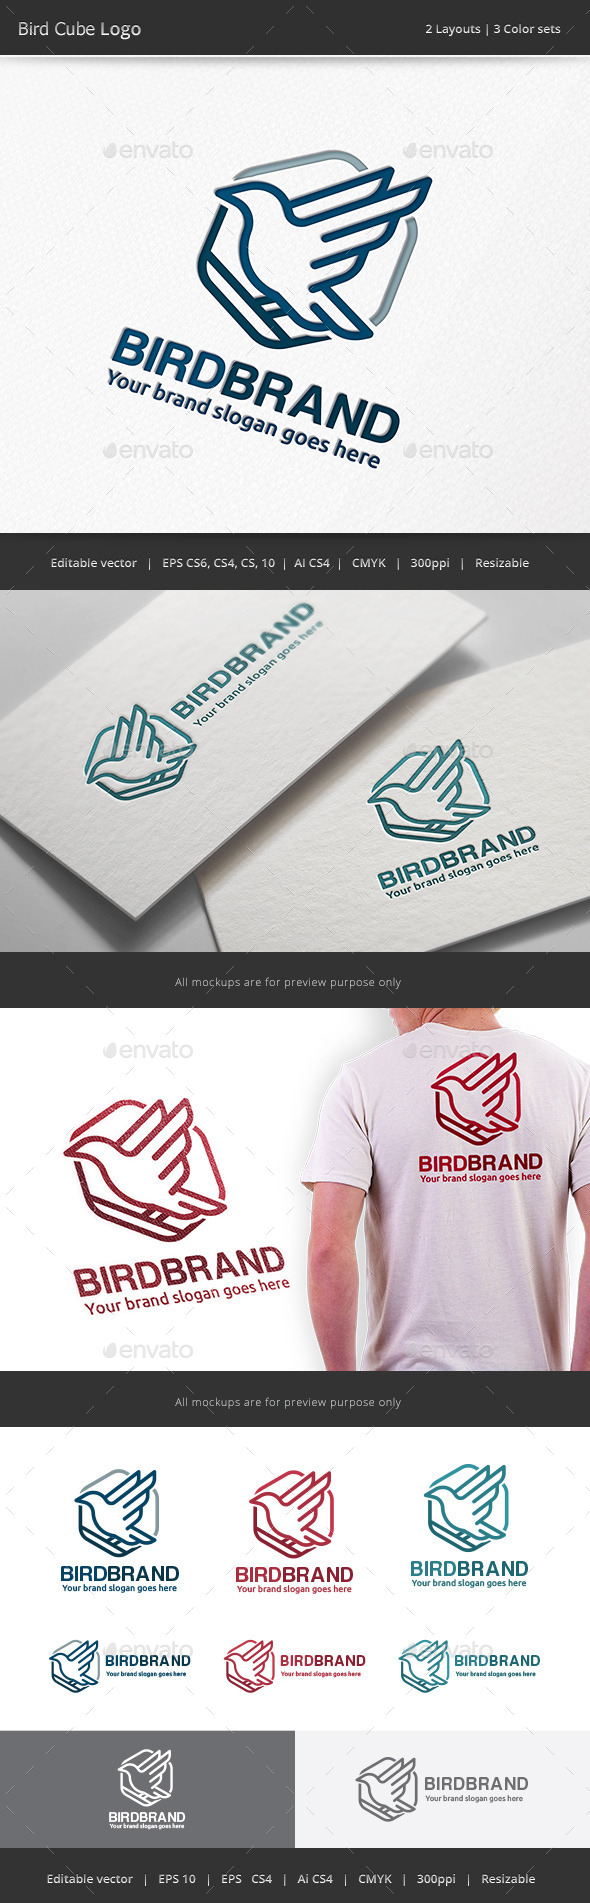 GraphicRiver Bird Cube Logo 11888500